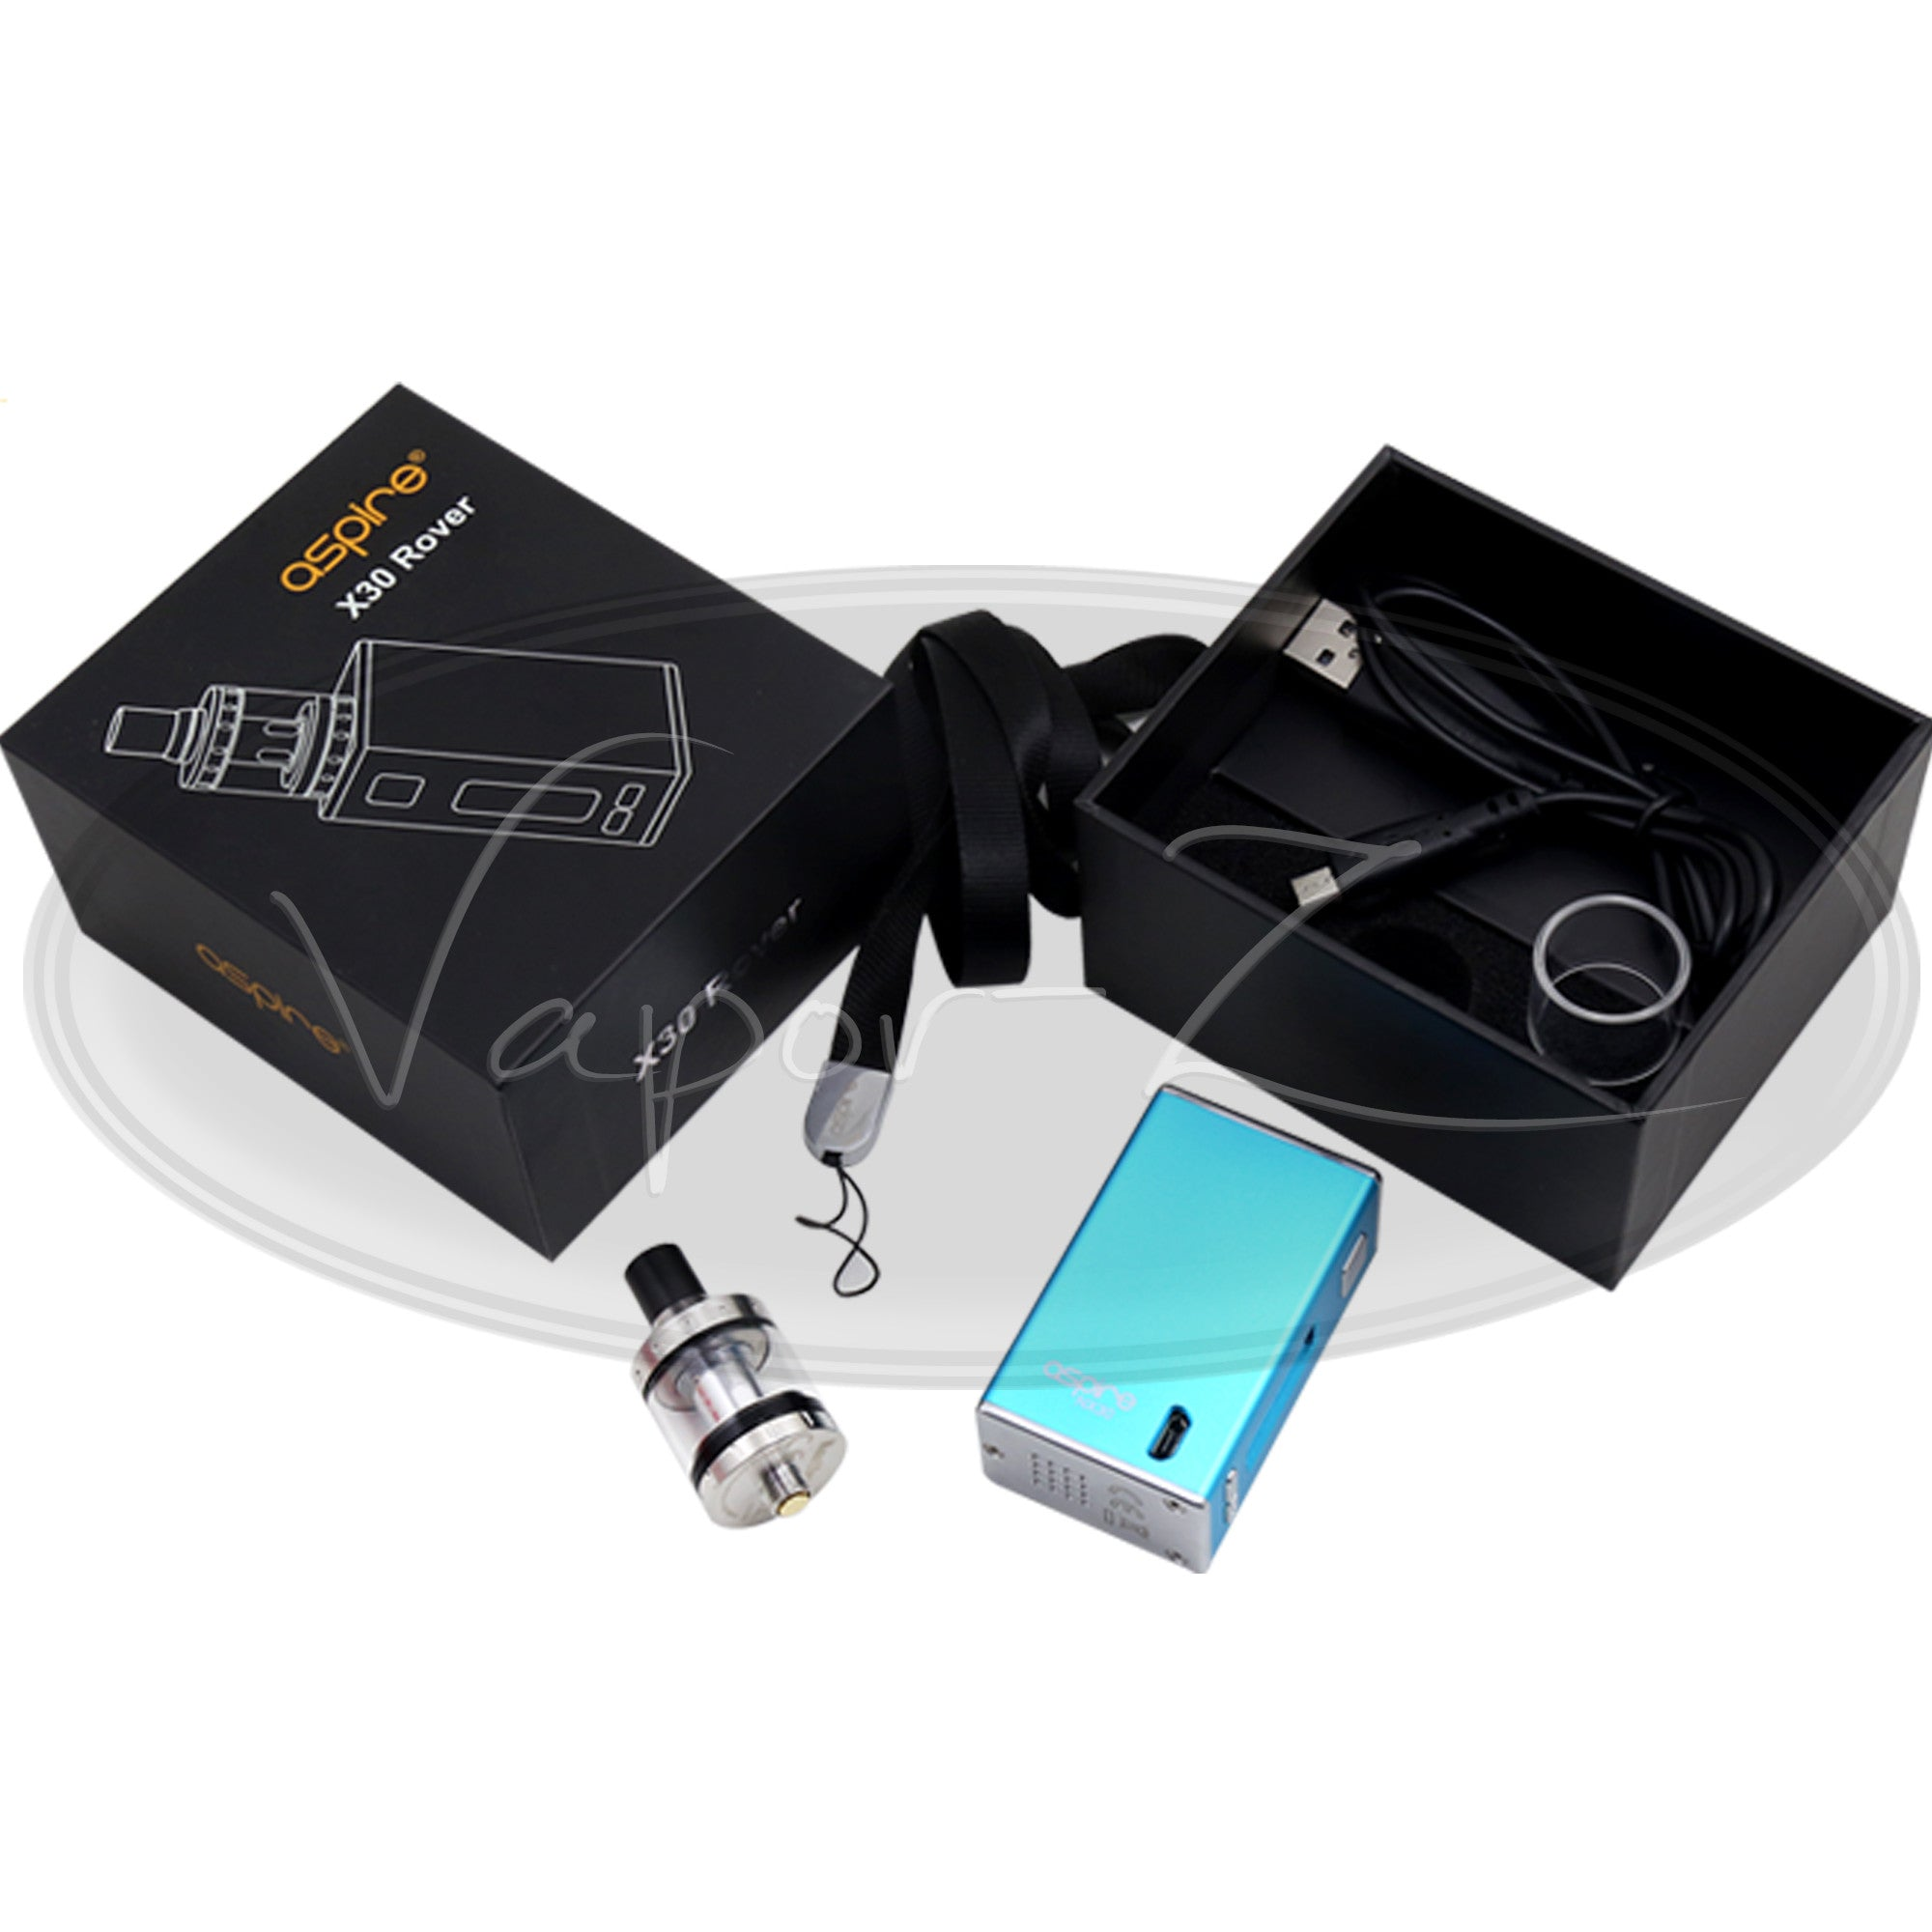 X30 Rover Starter Kit by Aspire